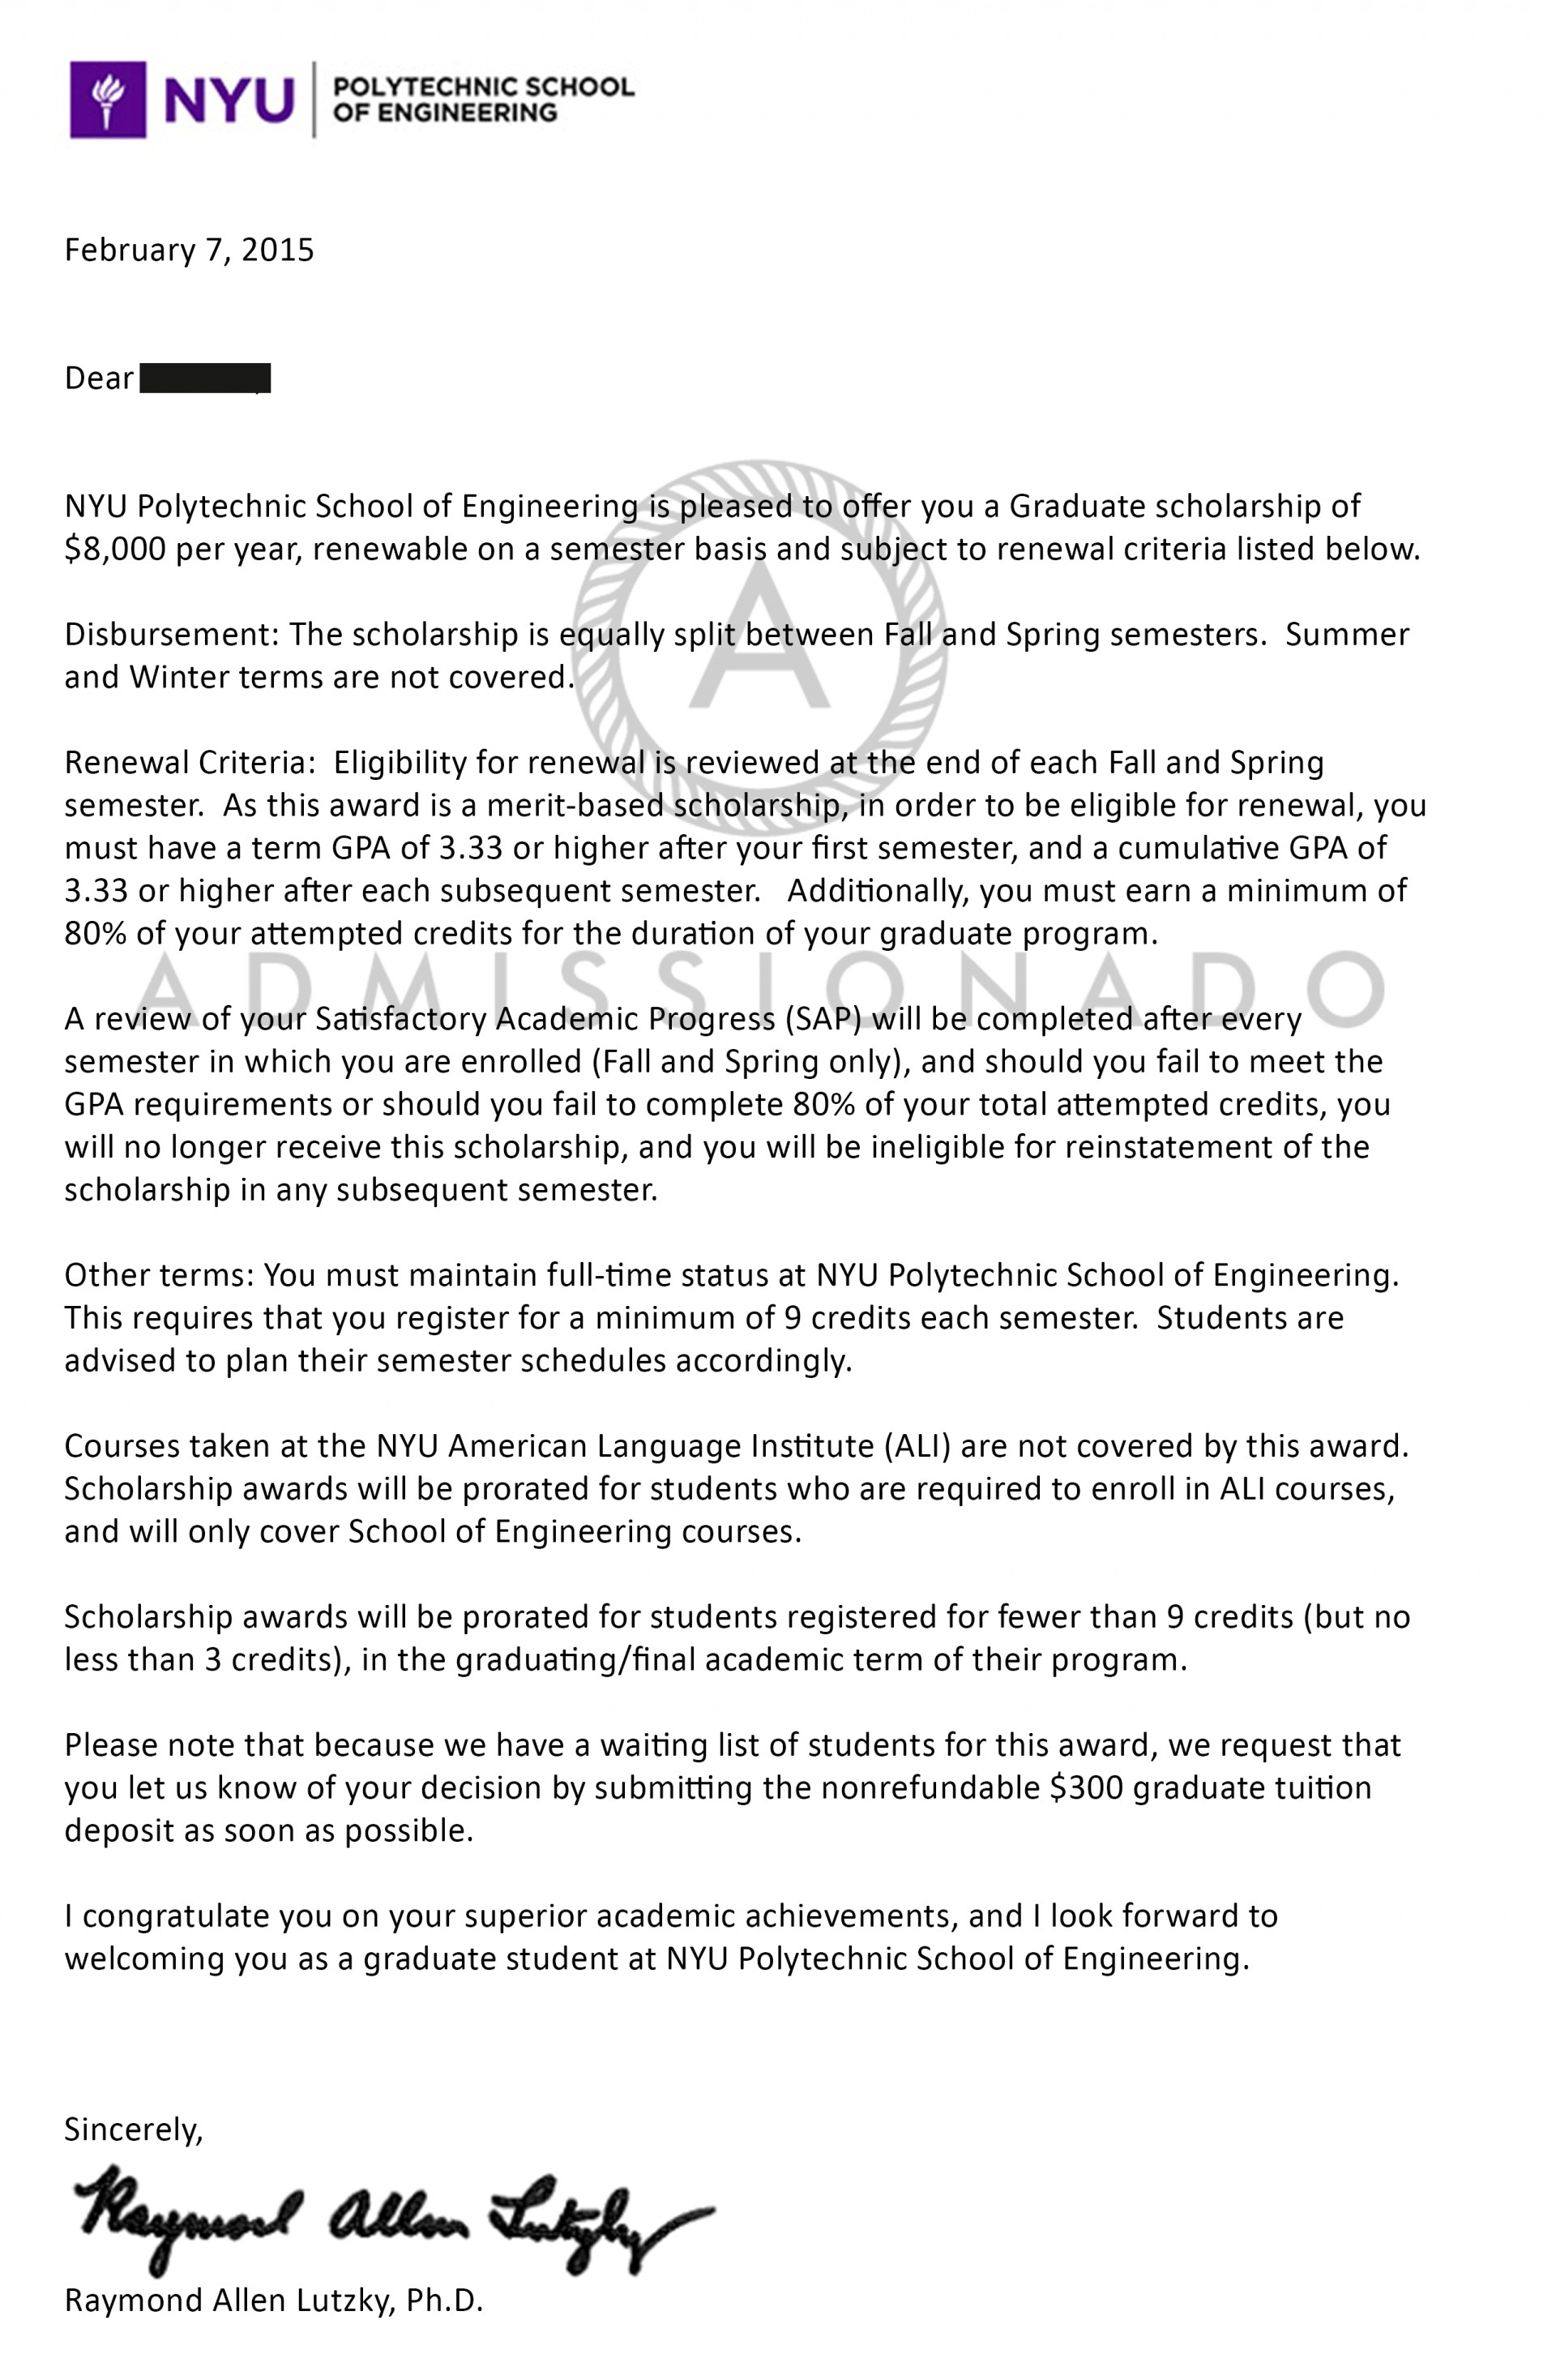 001 Essay Requirements Example Xz Nyu Acceptance Frightening For Texas A&m Utsa How Many Essays Are Required 2019 1920